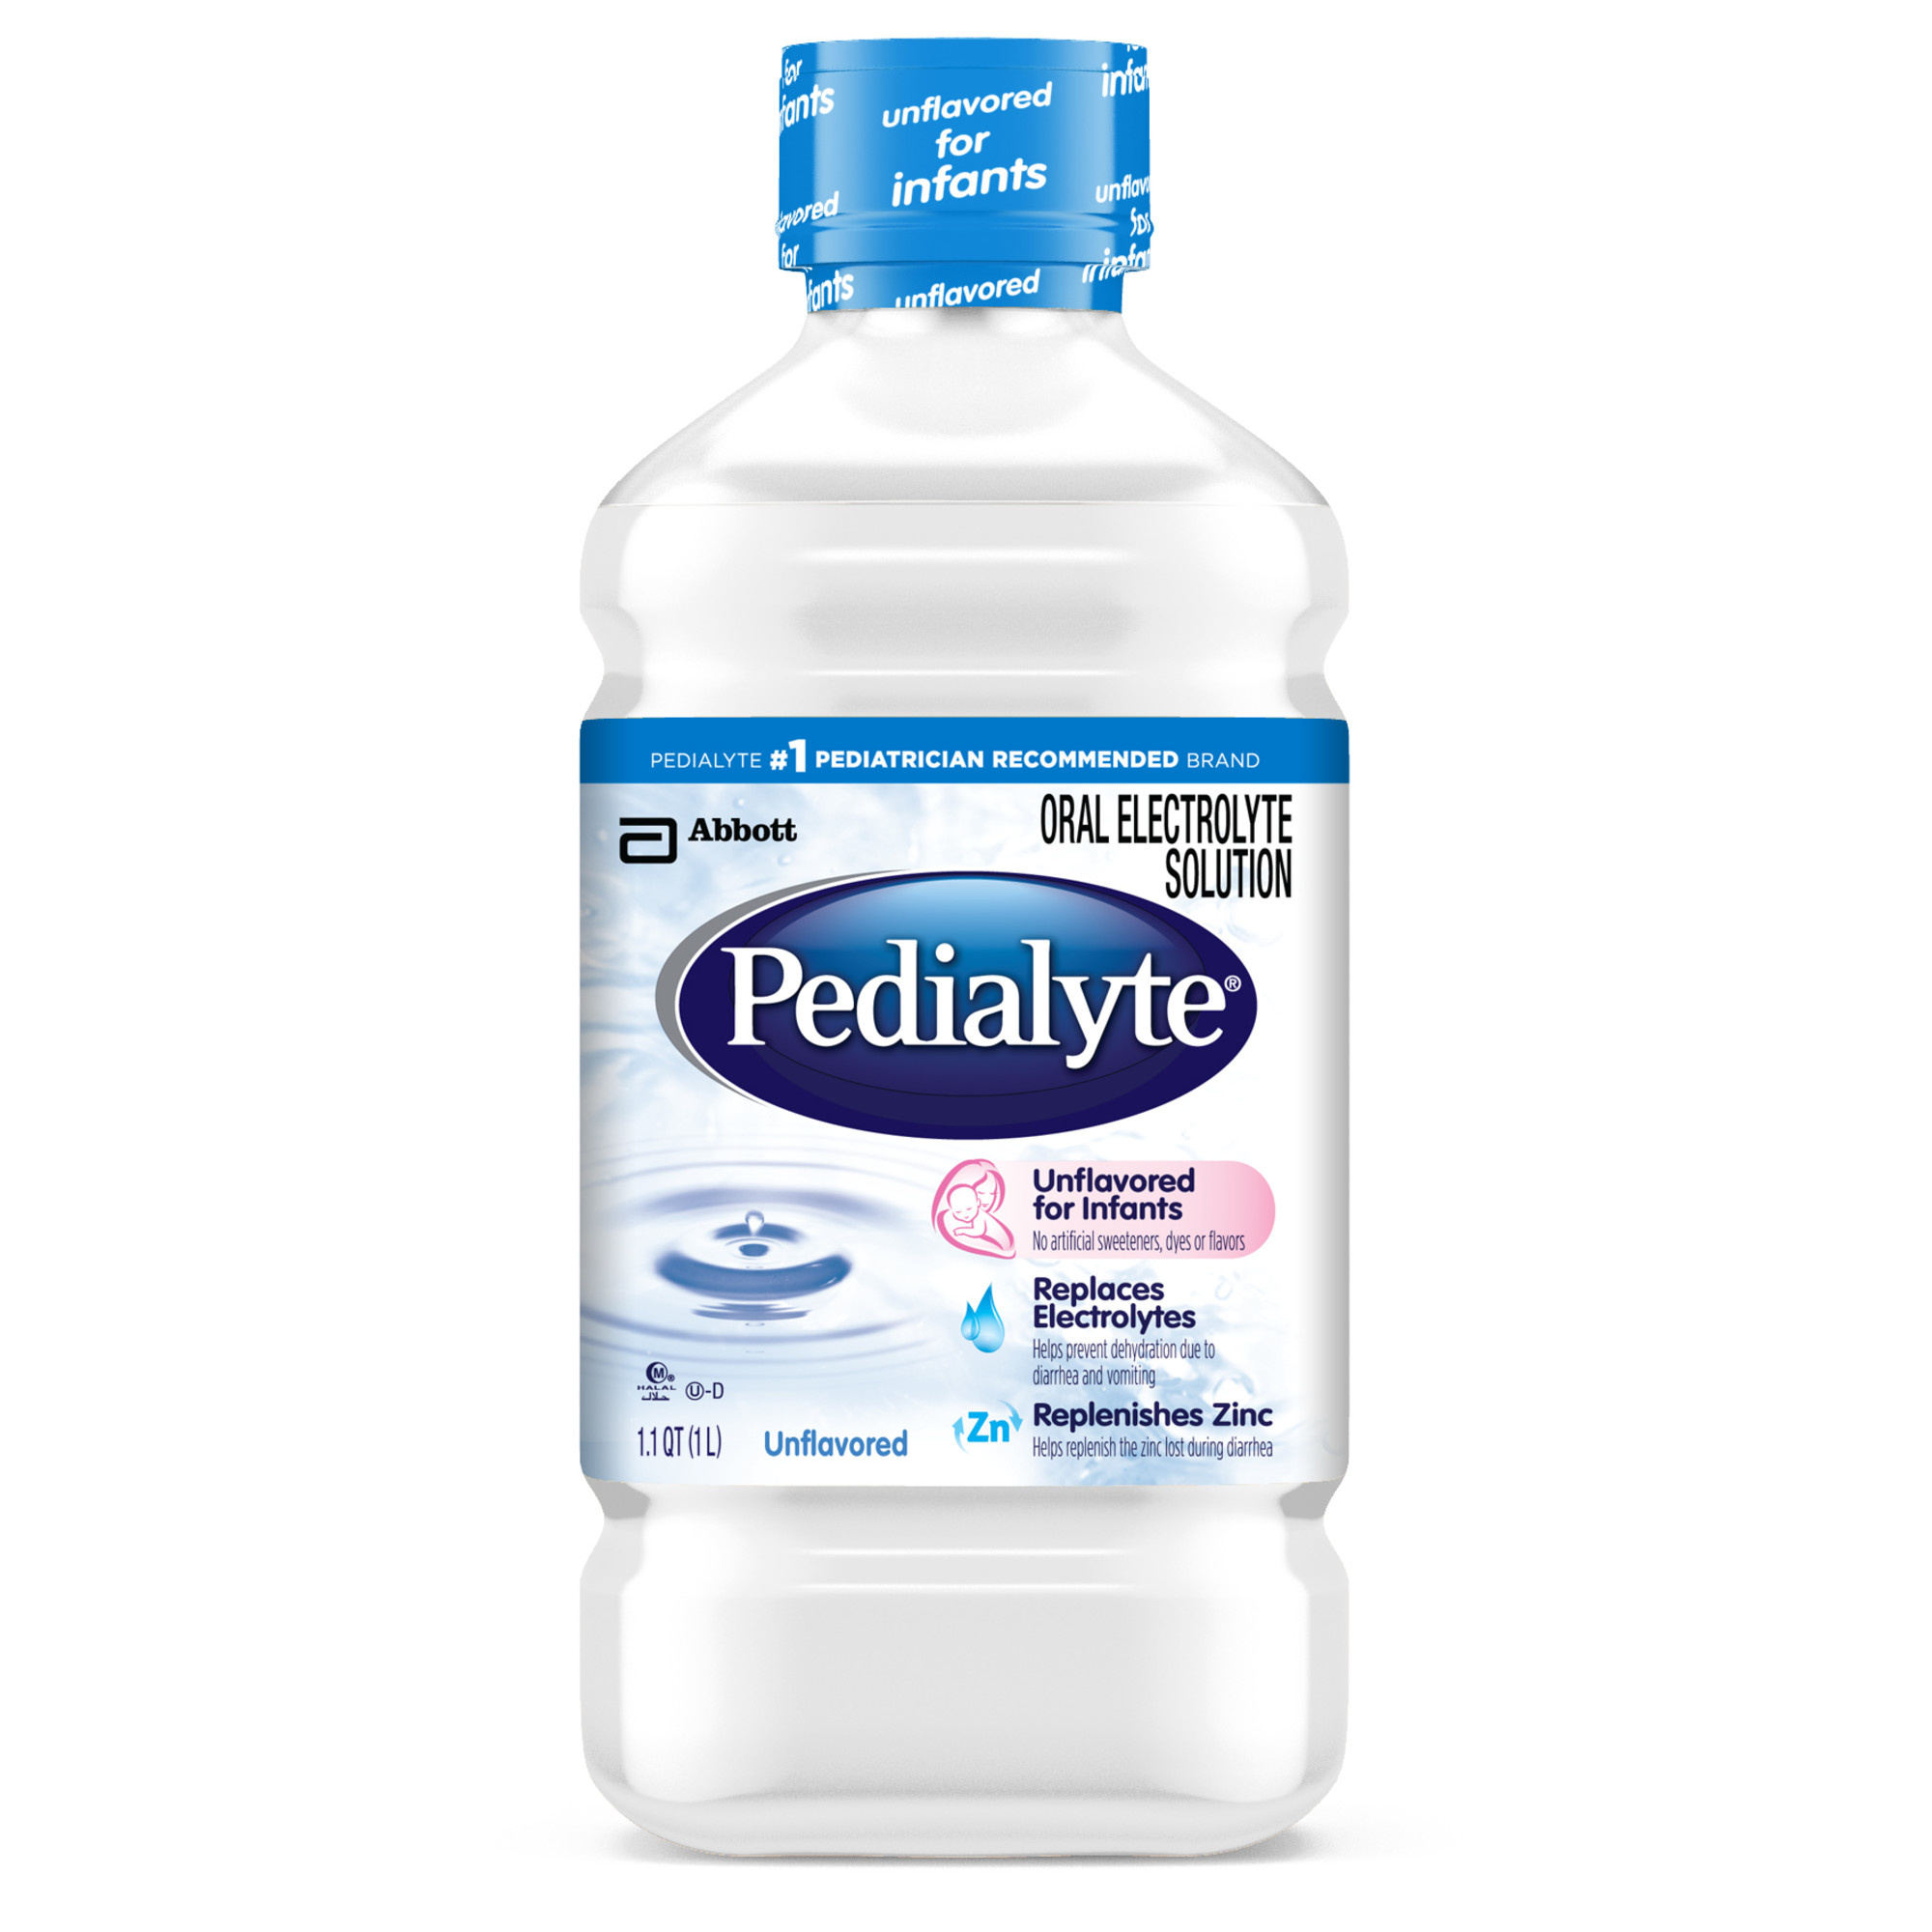 Pedialyte Oral Electrolyte Solution, Unflavored, 1-L